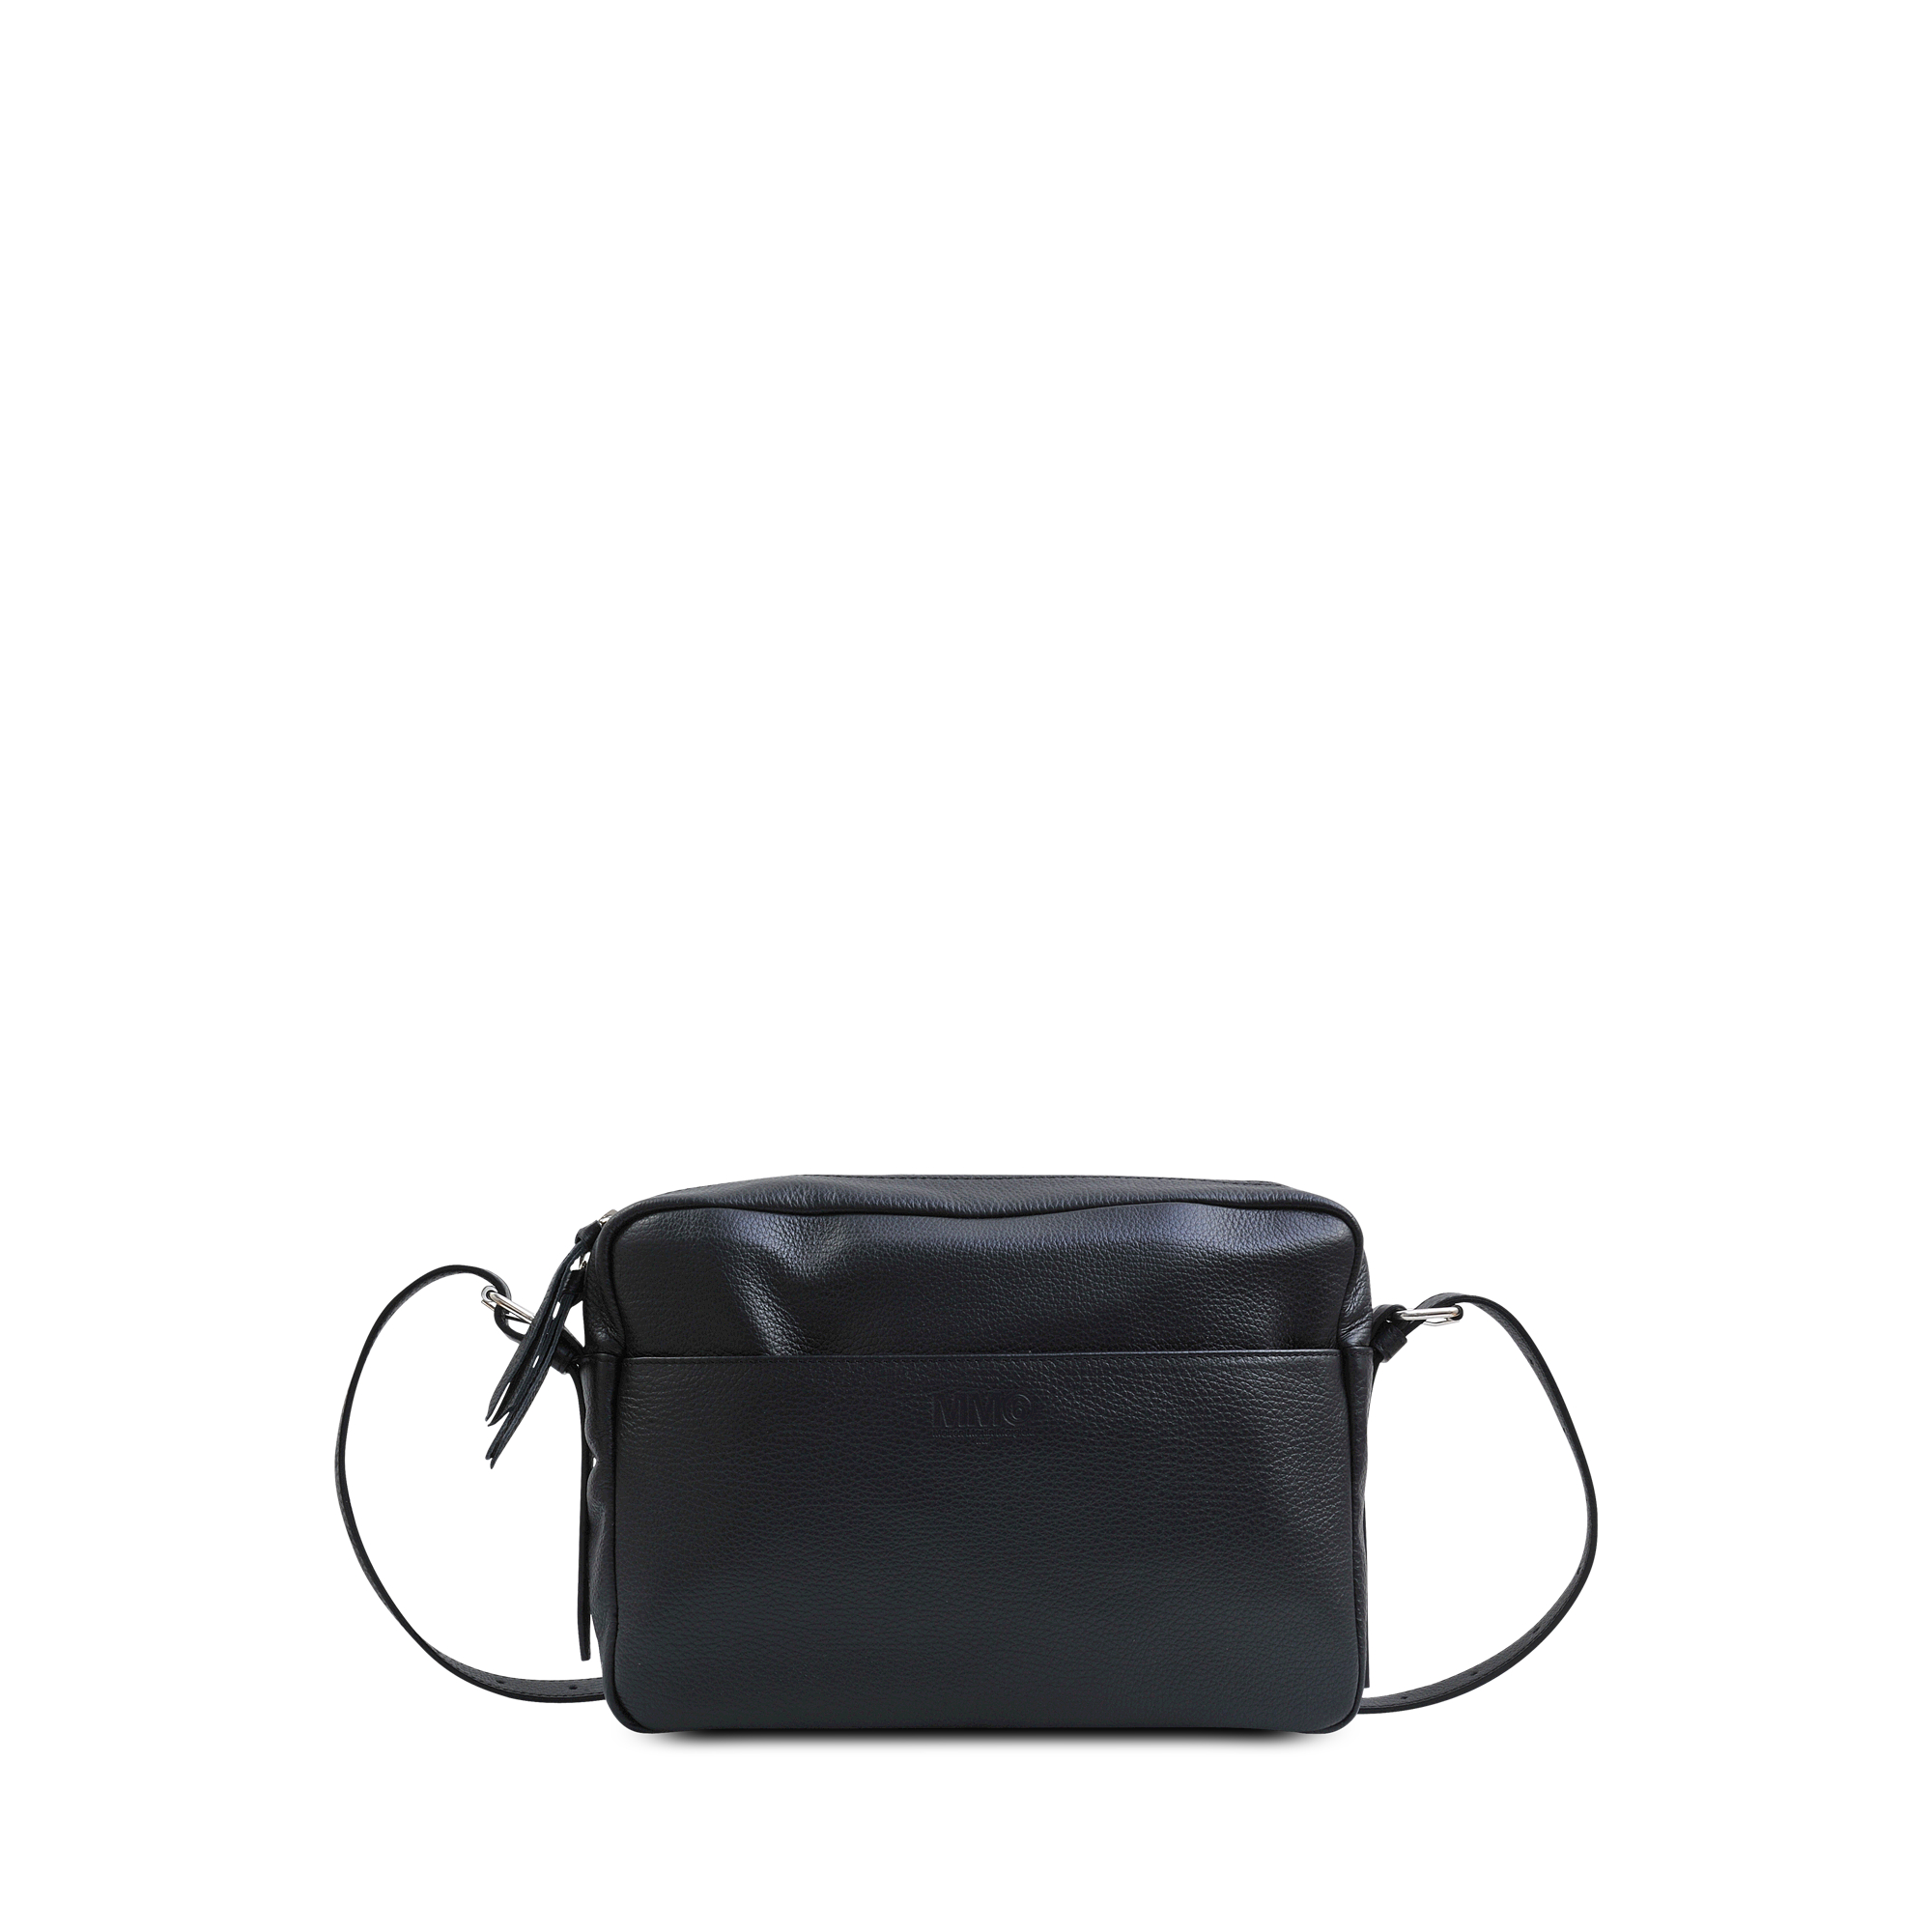 Hand Carry Crossbody Bag with Chain in Black Calf Leather with Foil Maison Martin Margiela wvuLe